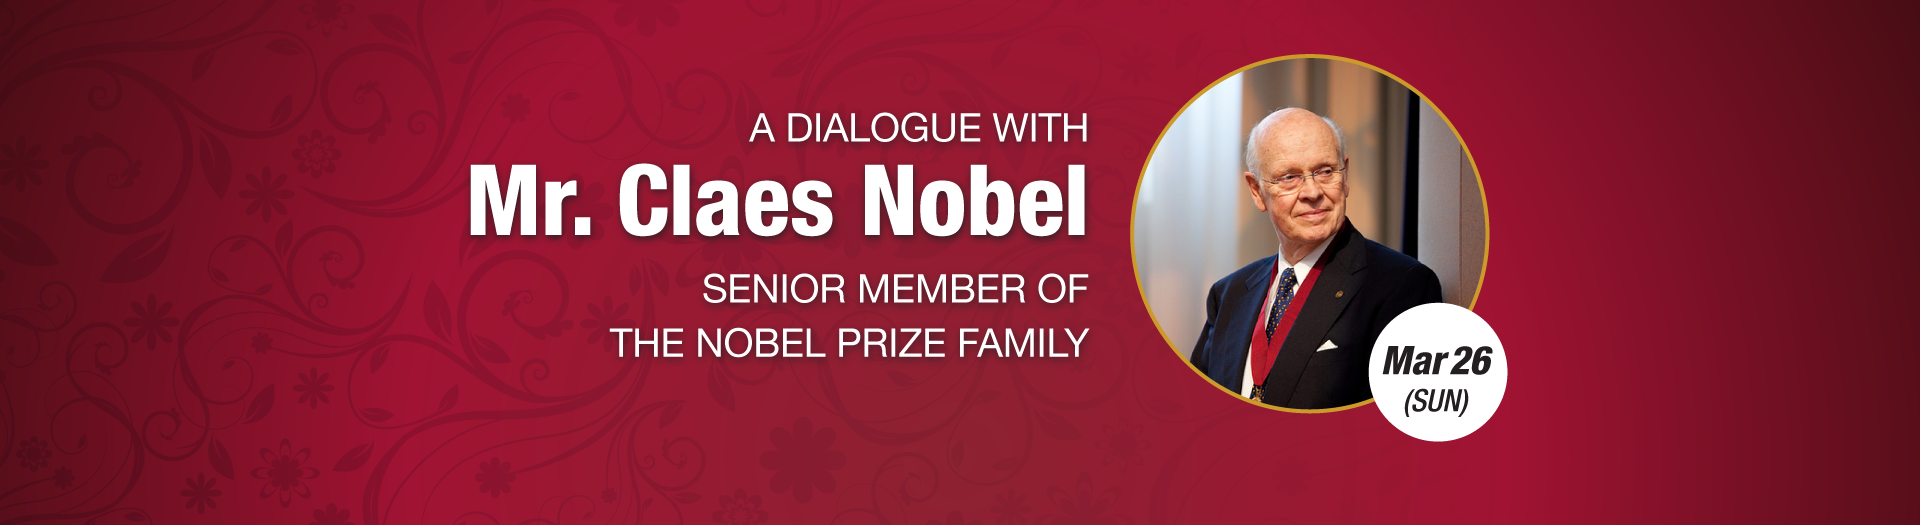 A Dialogue with Mr Claes Nobel